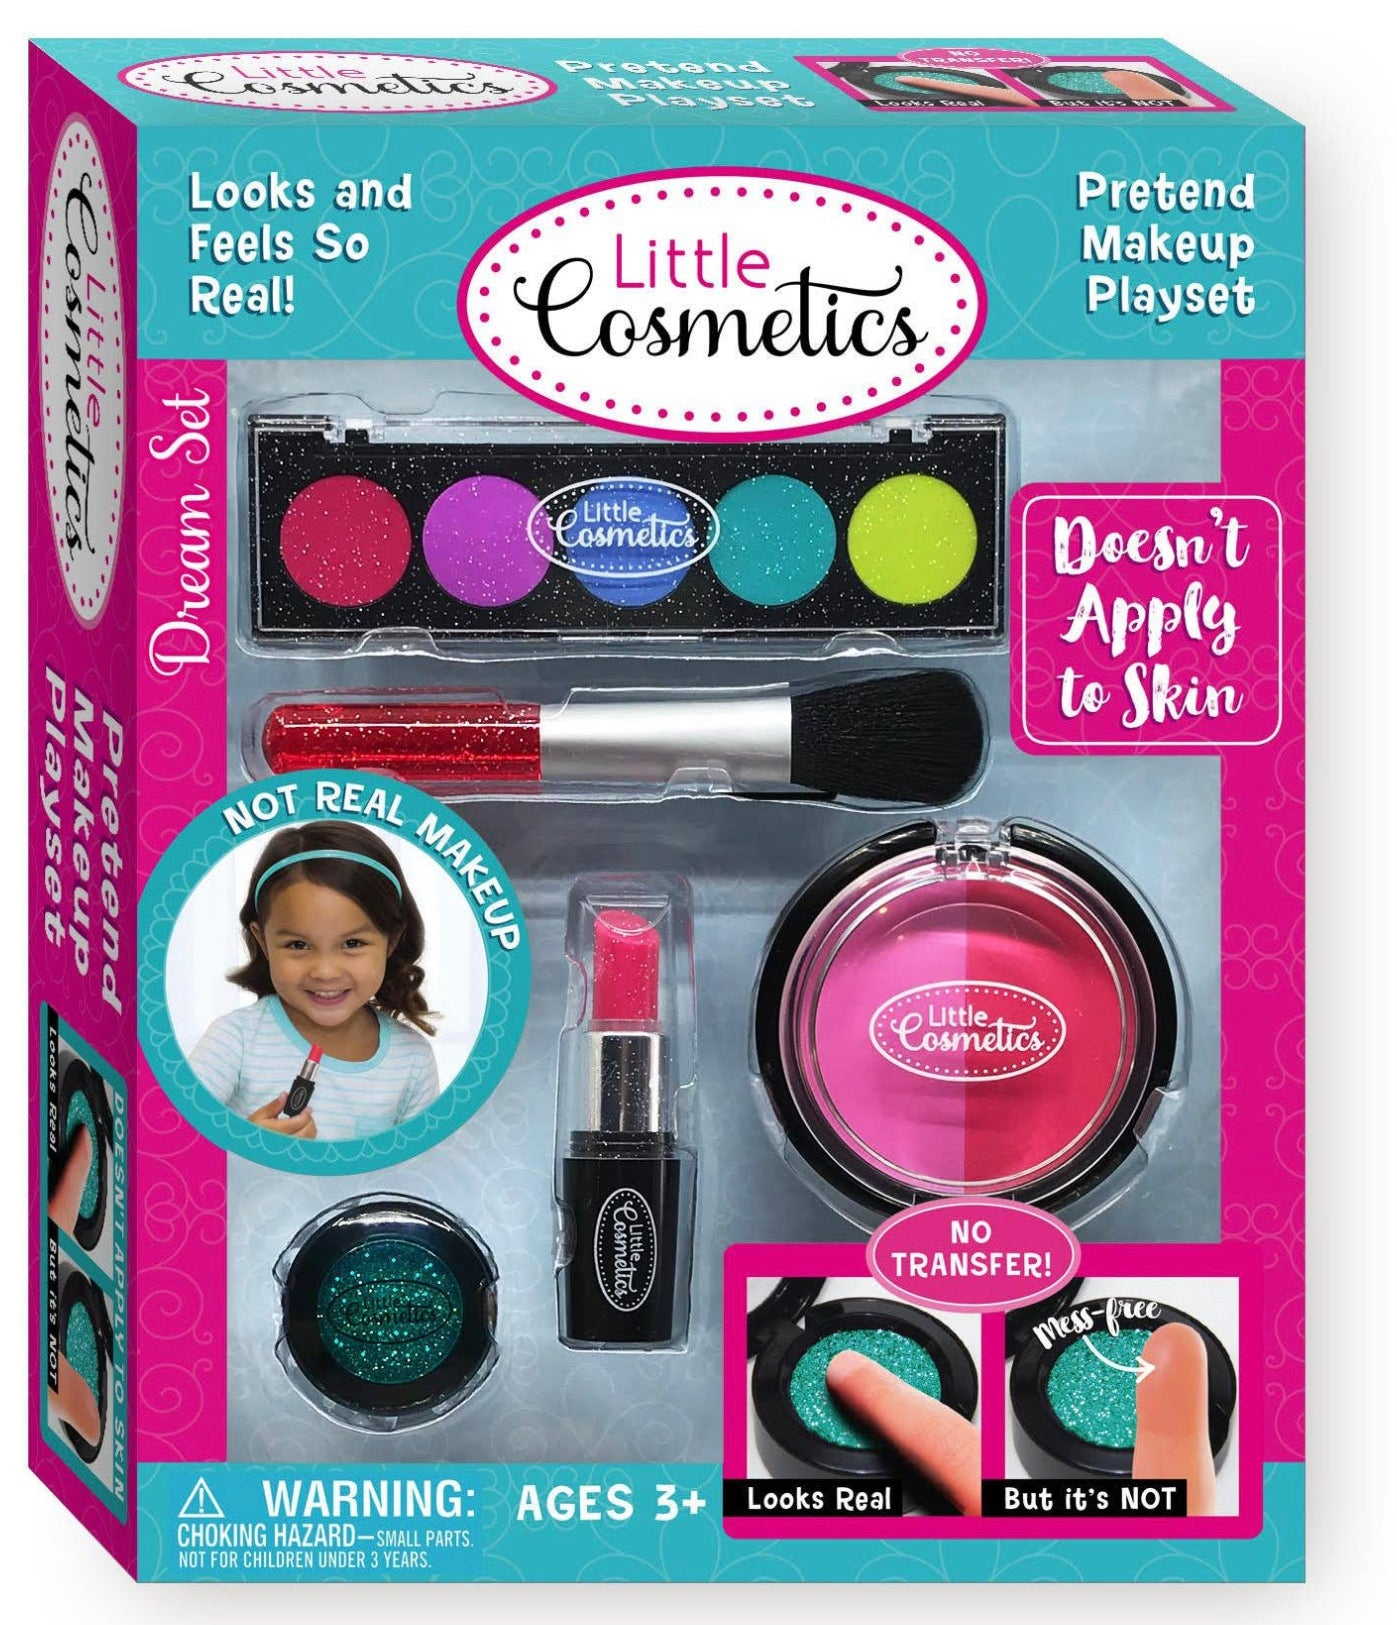 Little Cosmetics Pretend Makeup Dream Set